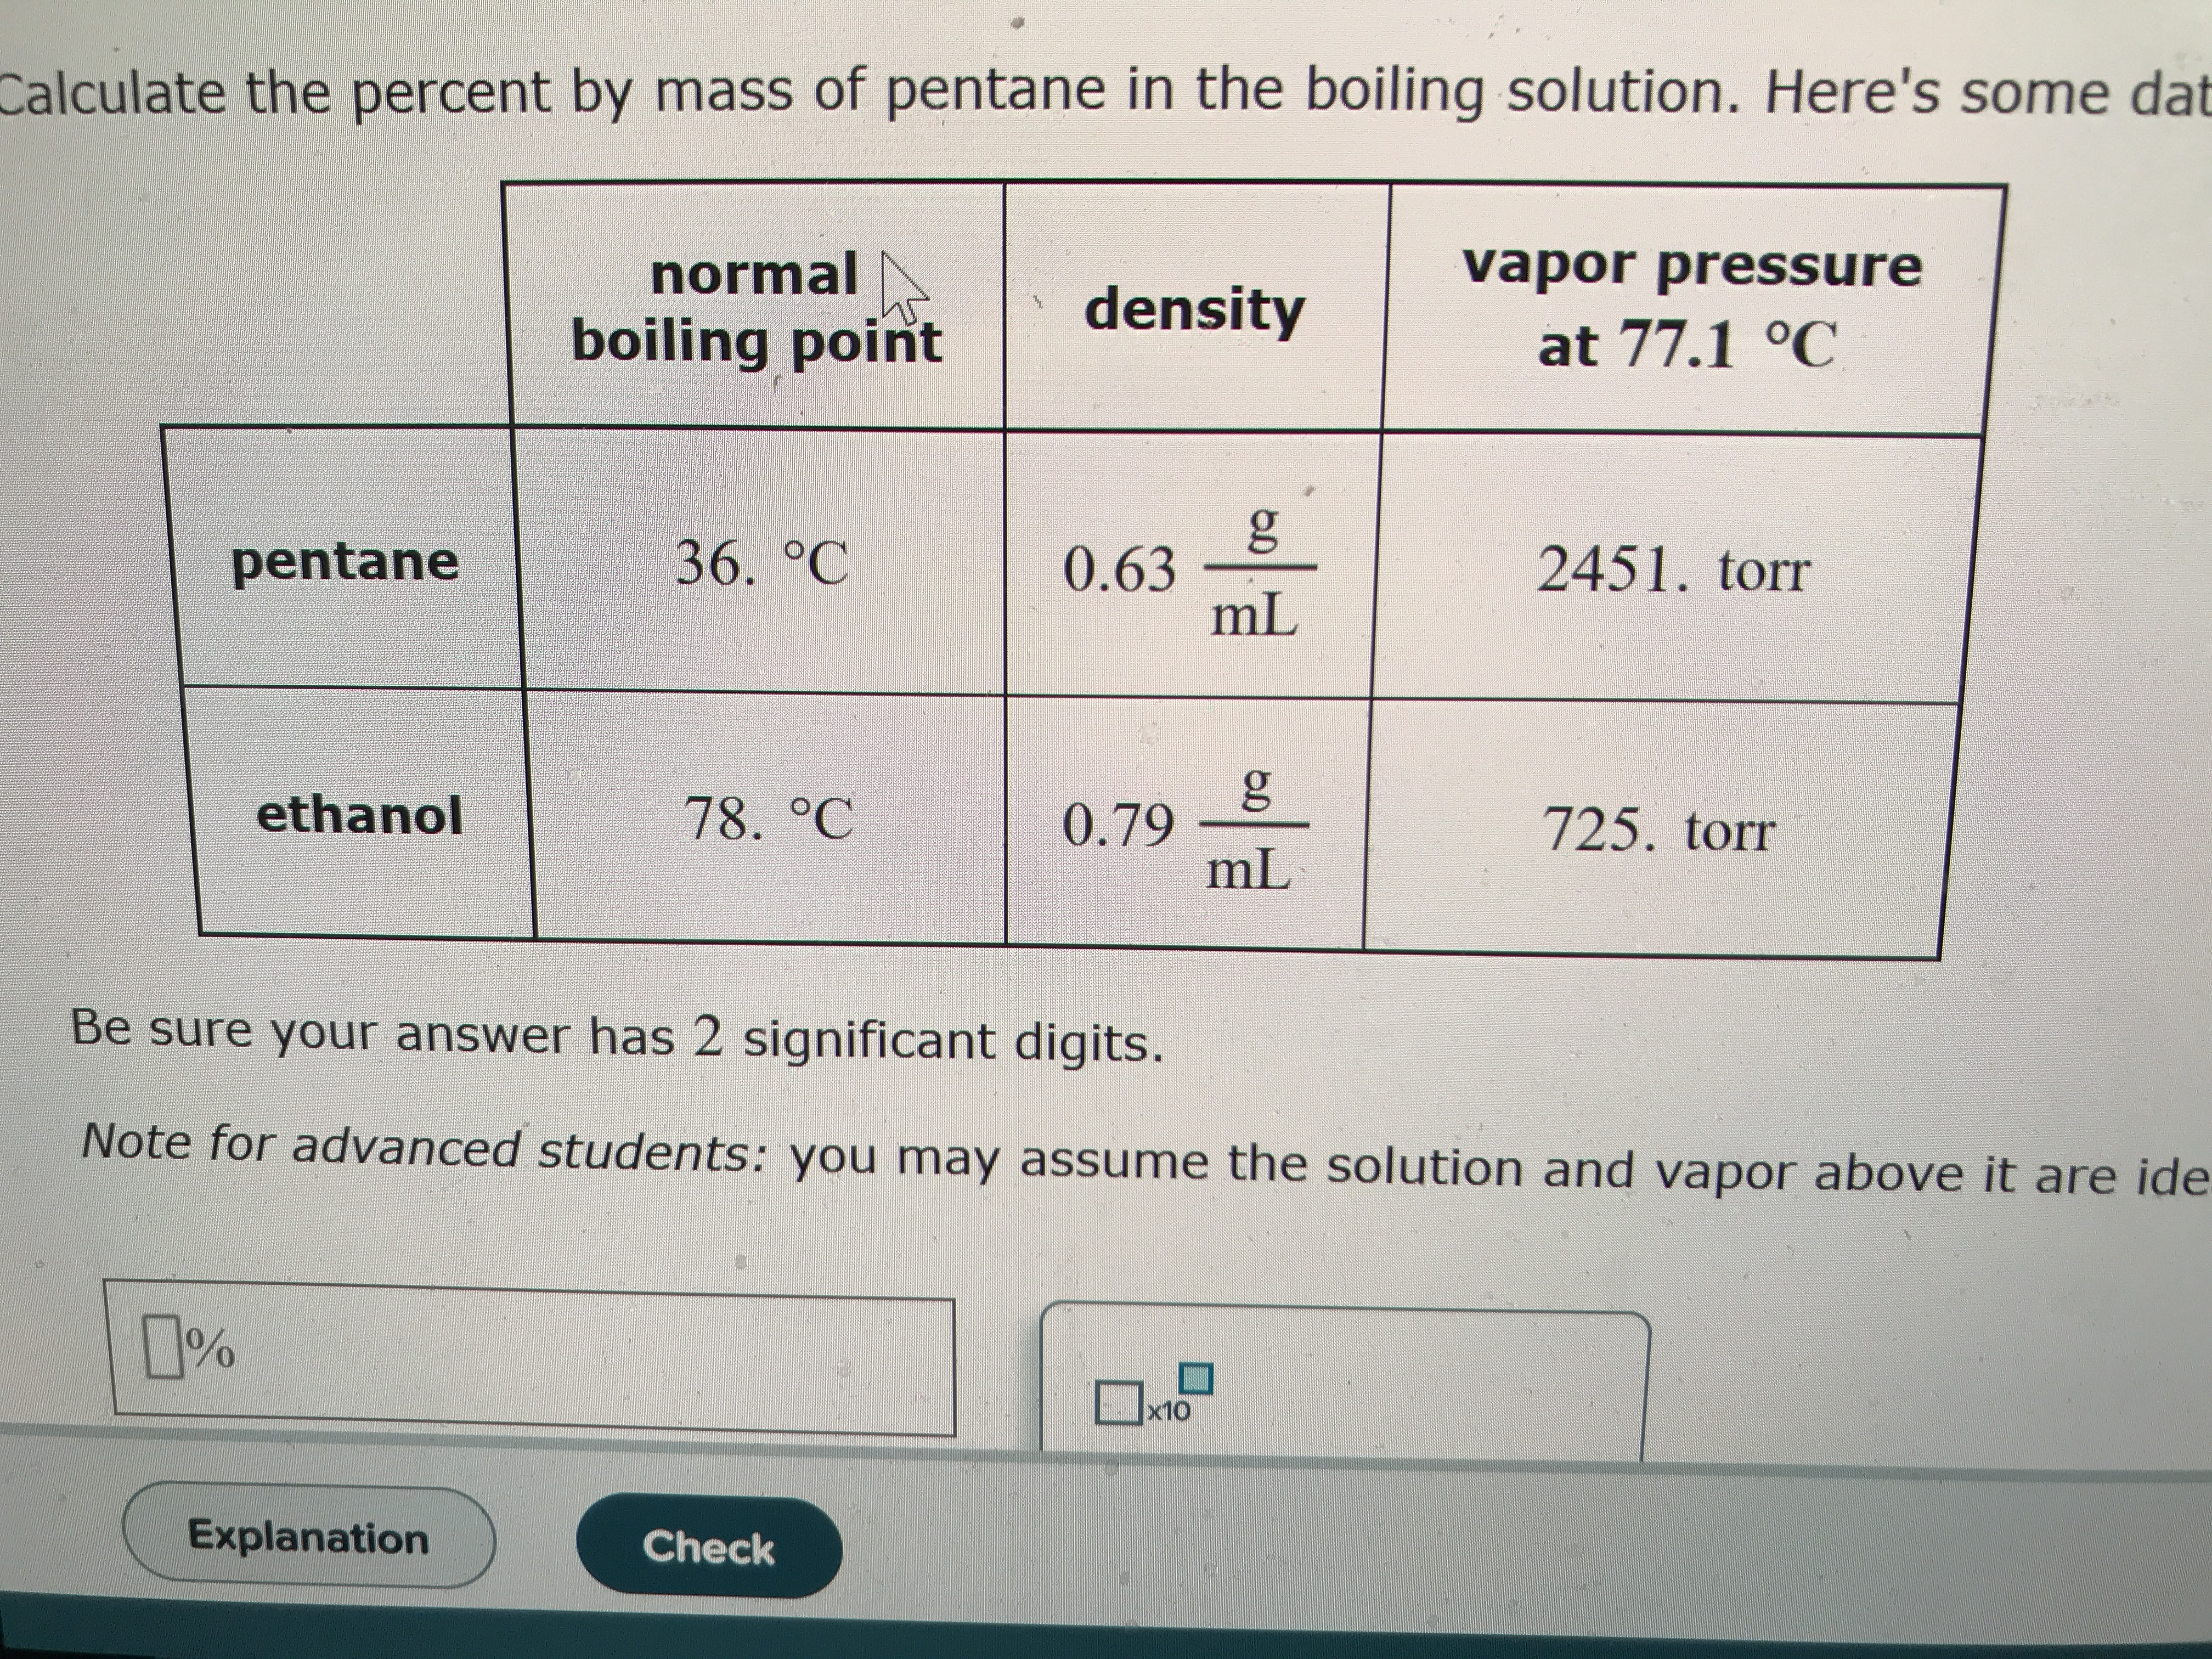 Calculate the percent by mass of pentane in the boiling solution. Here's some dat vapor pressure normal density boiling point at 77.1 °C g 0.63 mL 36. °C pentane 2451. torr ethanol 78. °C 0.79 mL 725. torr Be sure your answer has 2 significant digits. Note for advanced students: you may assume the solution and vapor above it are ide x10 Explanation Check